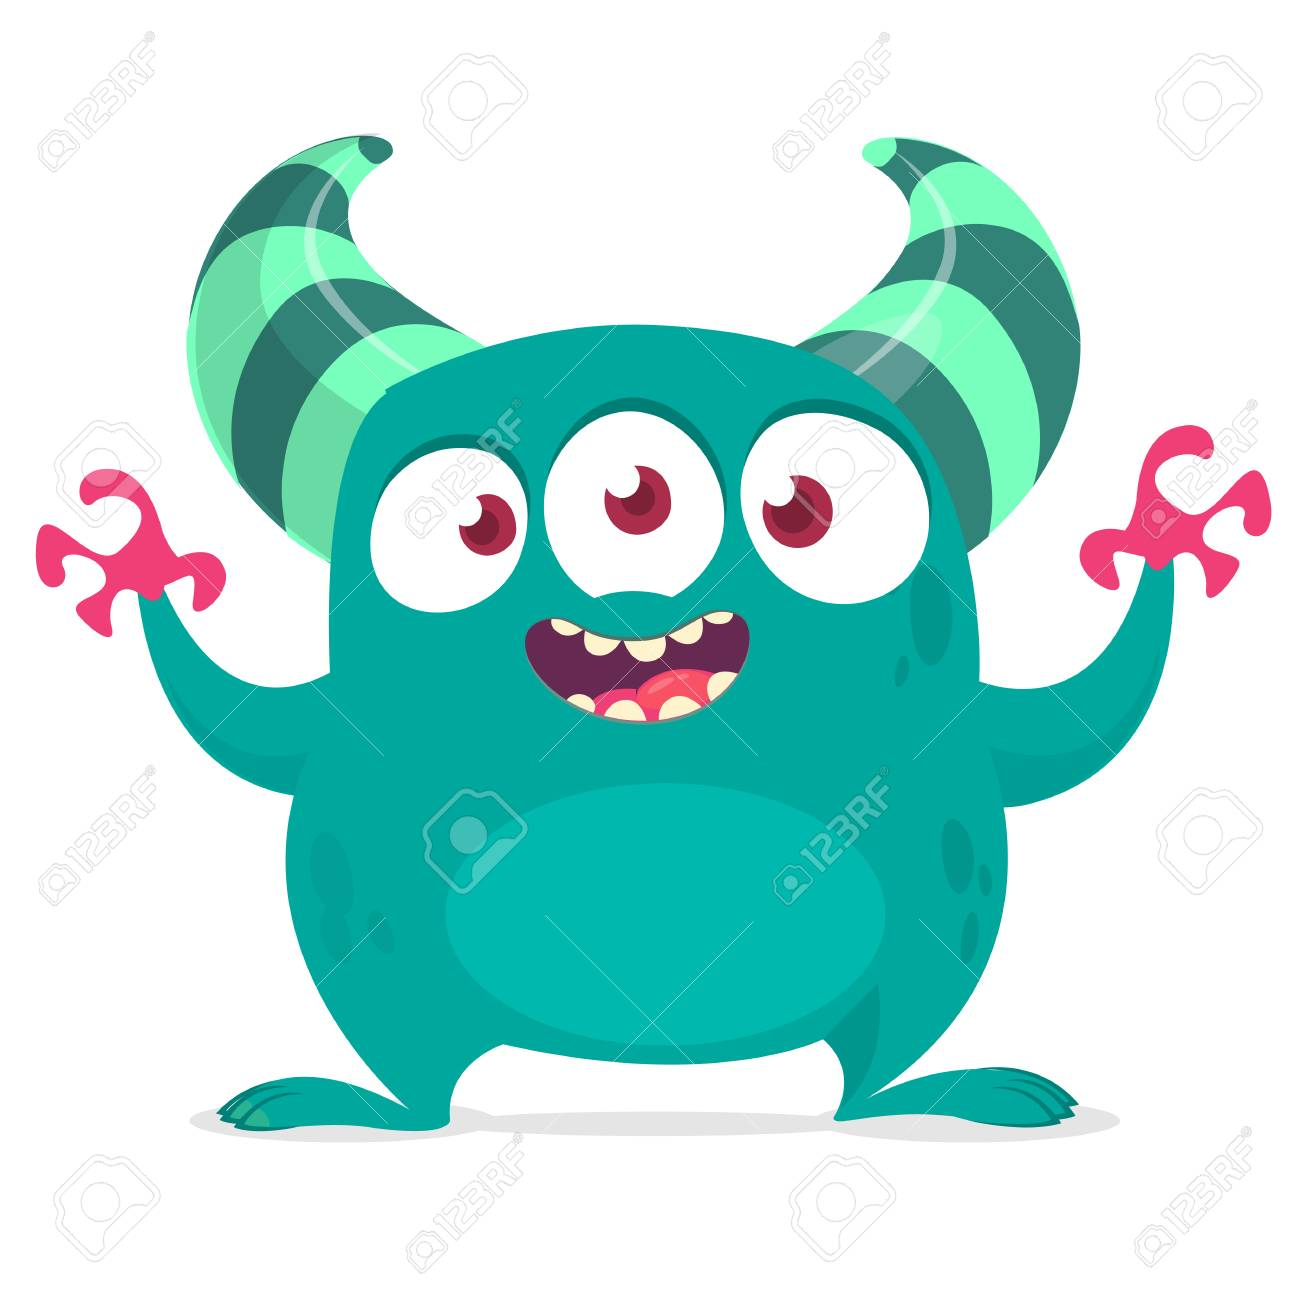 Funny cartoon alien with three eyes. Vector illustration. Clipart.